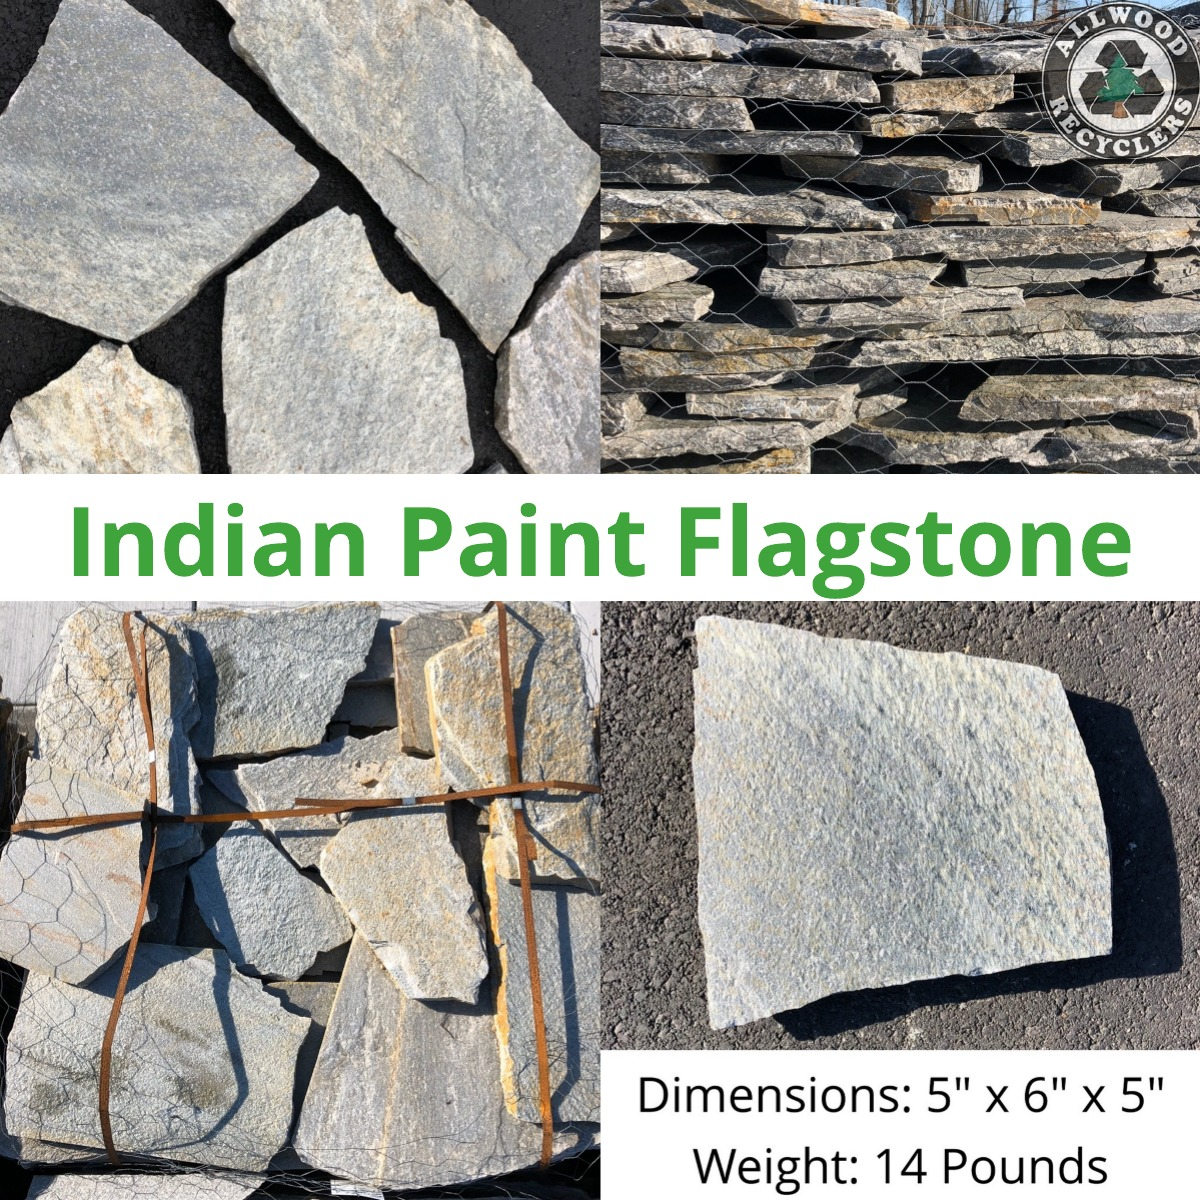 Indian Paint Flagstone